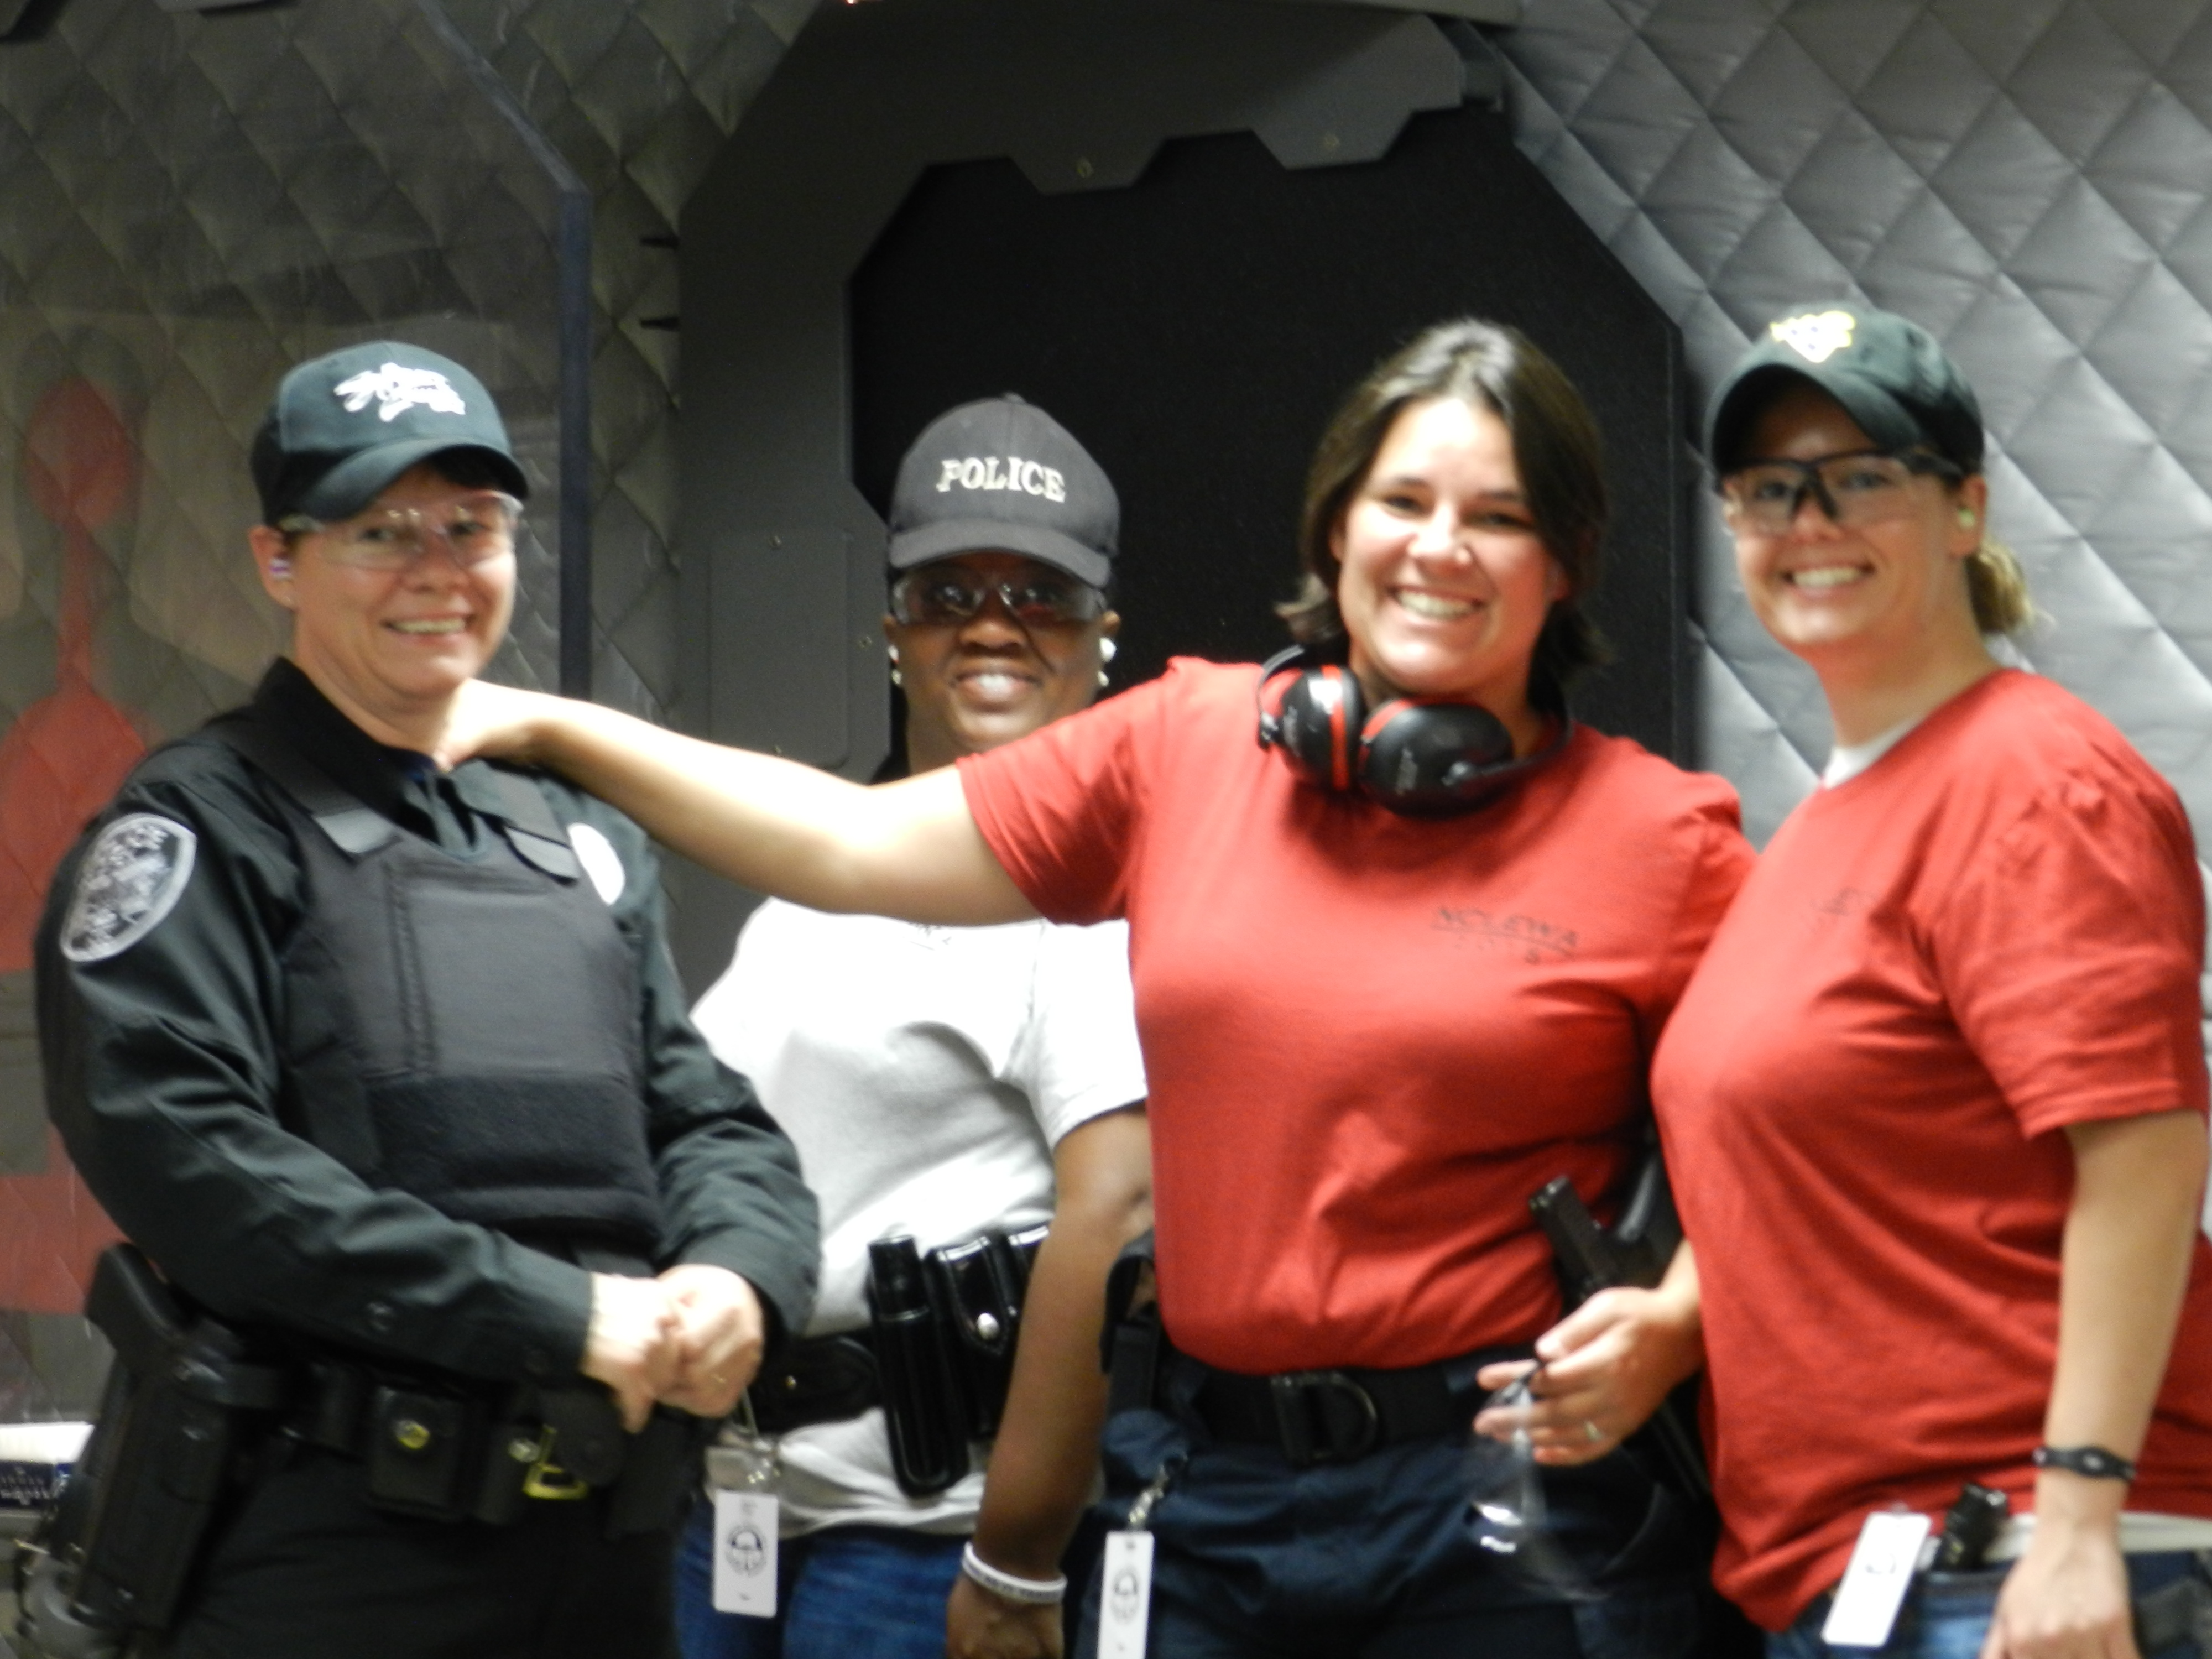 law enforcement and women The us department of justice reported a small increase in the number of women in law enforcement from 1998 to 2008, from 14 percent to 152 percent.